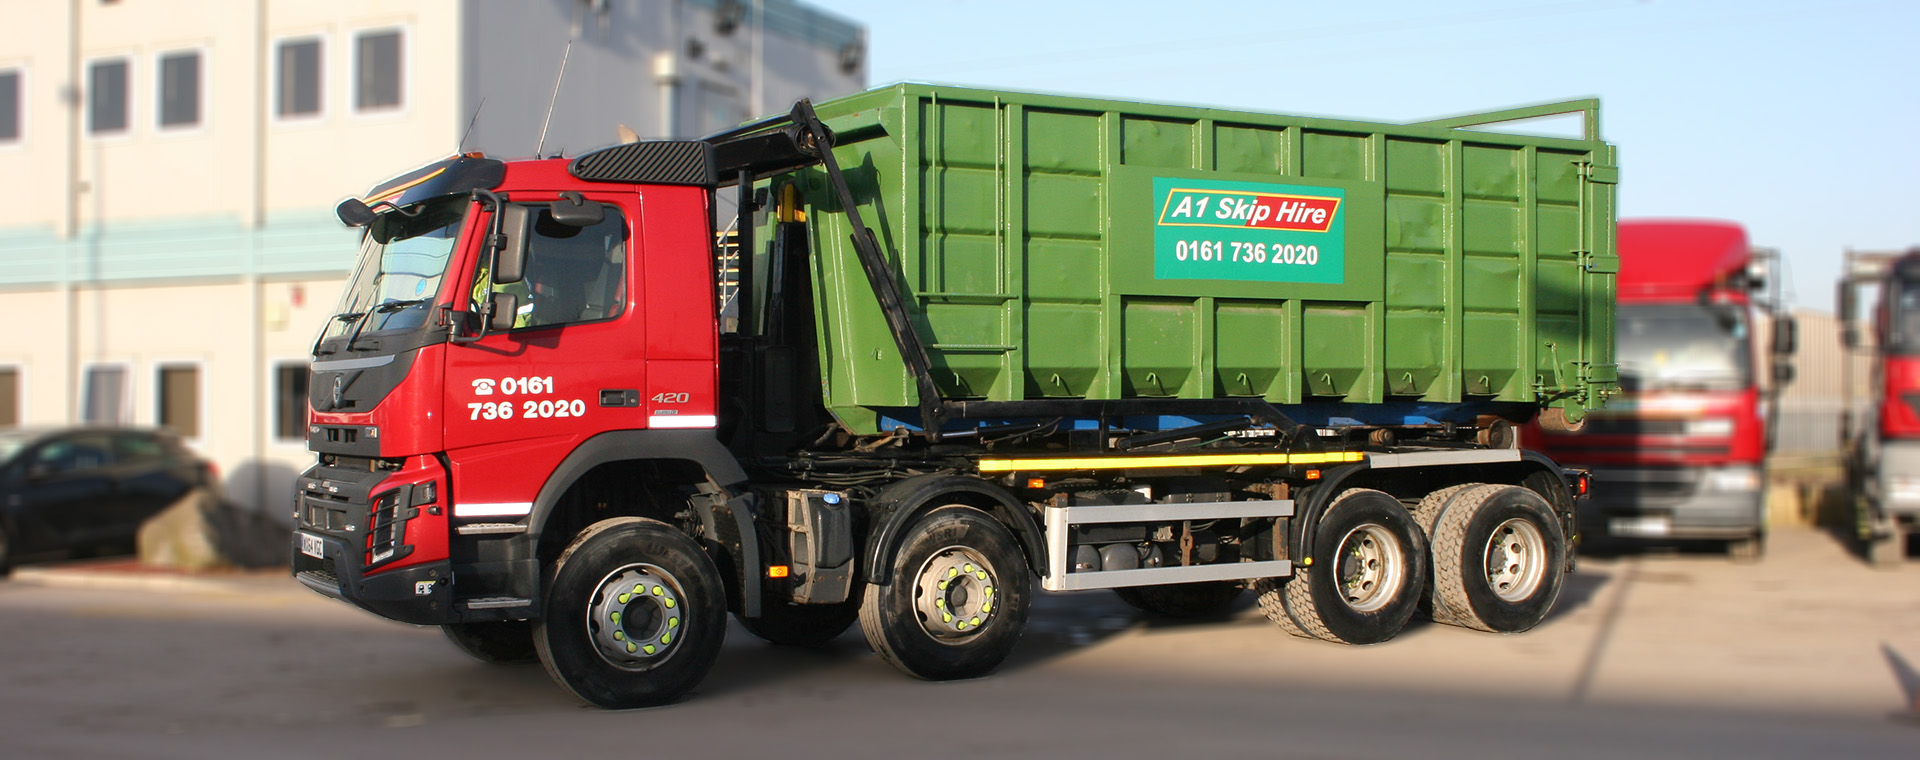 Commercial Skip Hire Manchester